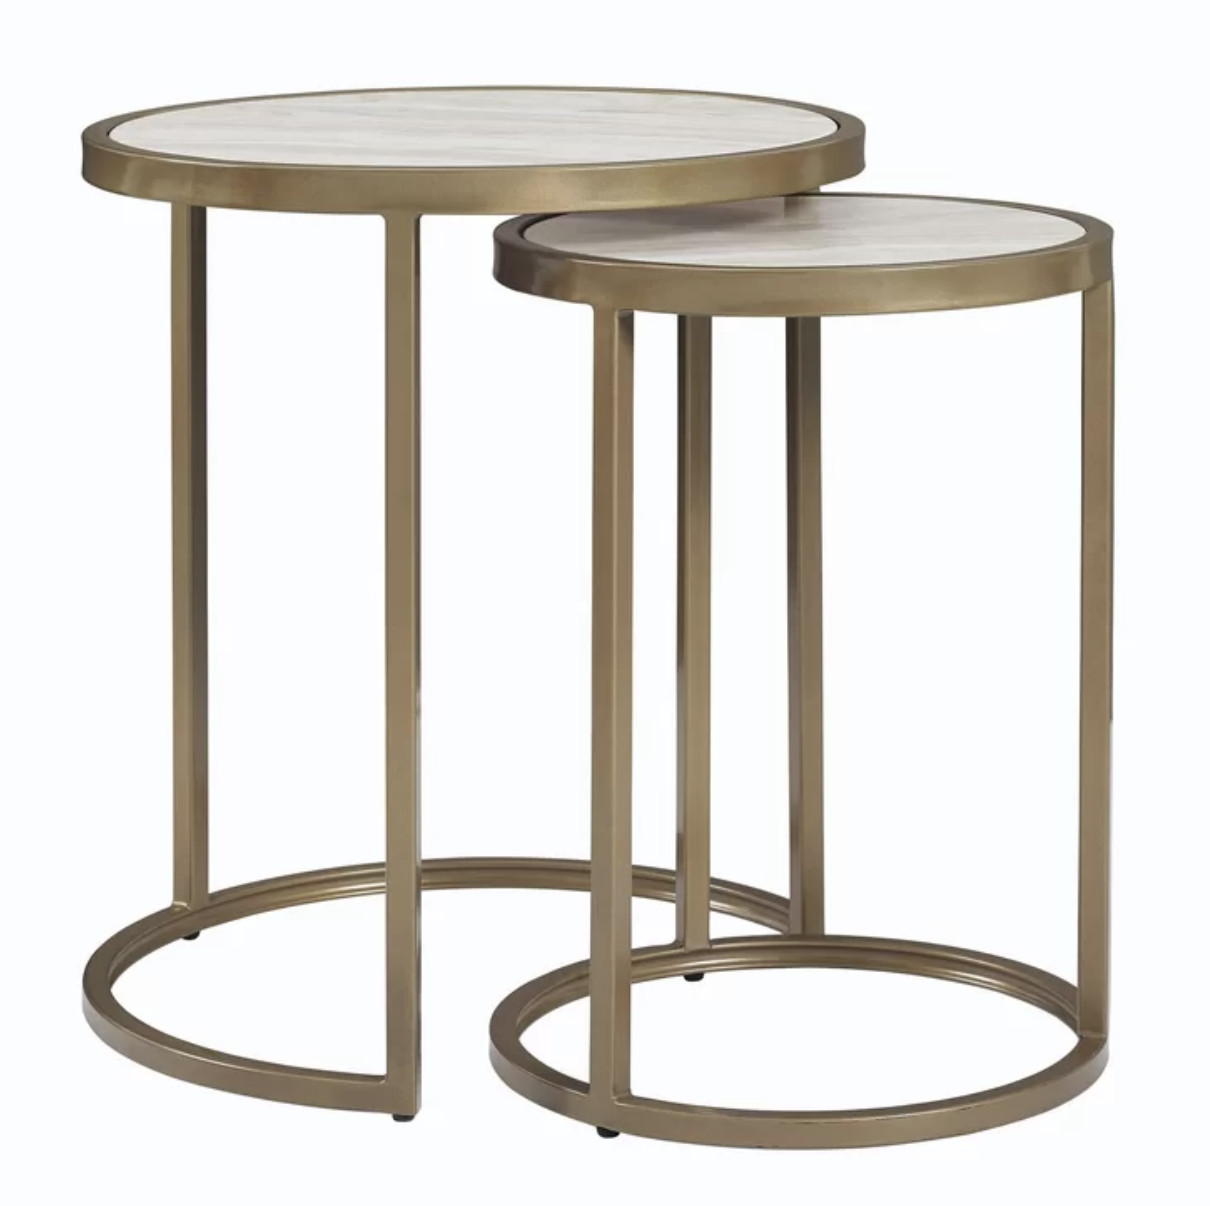 Kit 2 Piece Nesting Tables